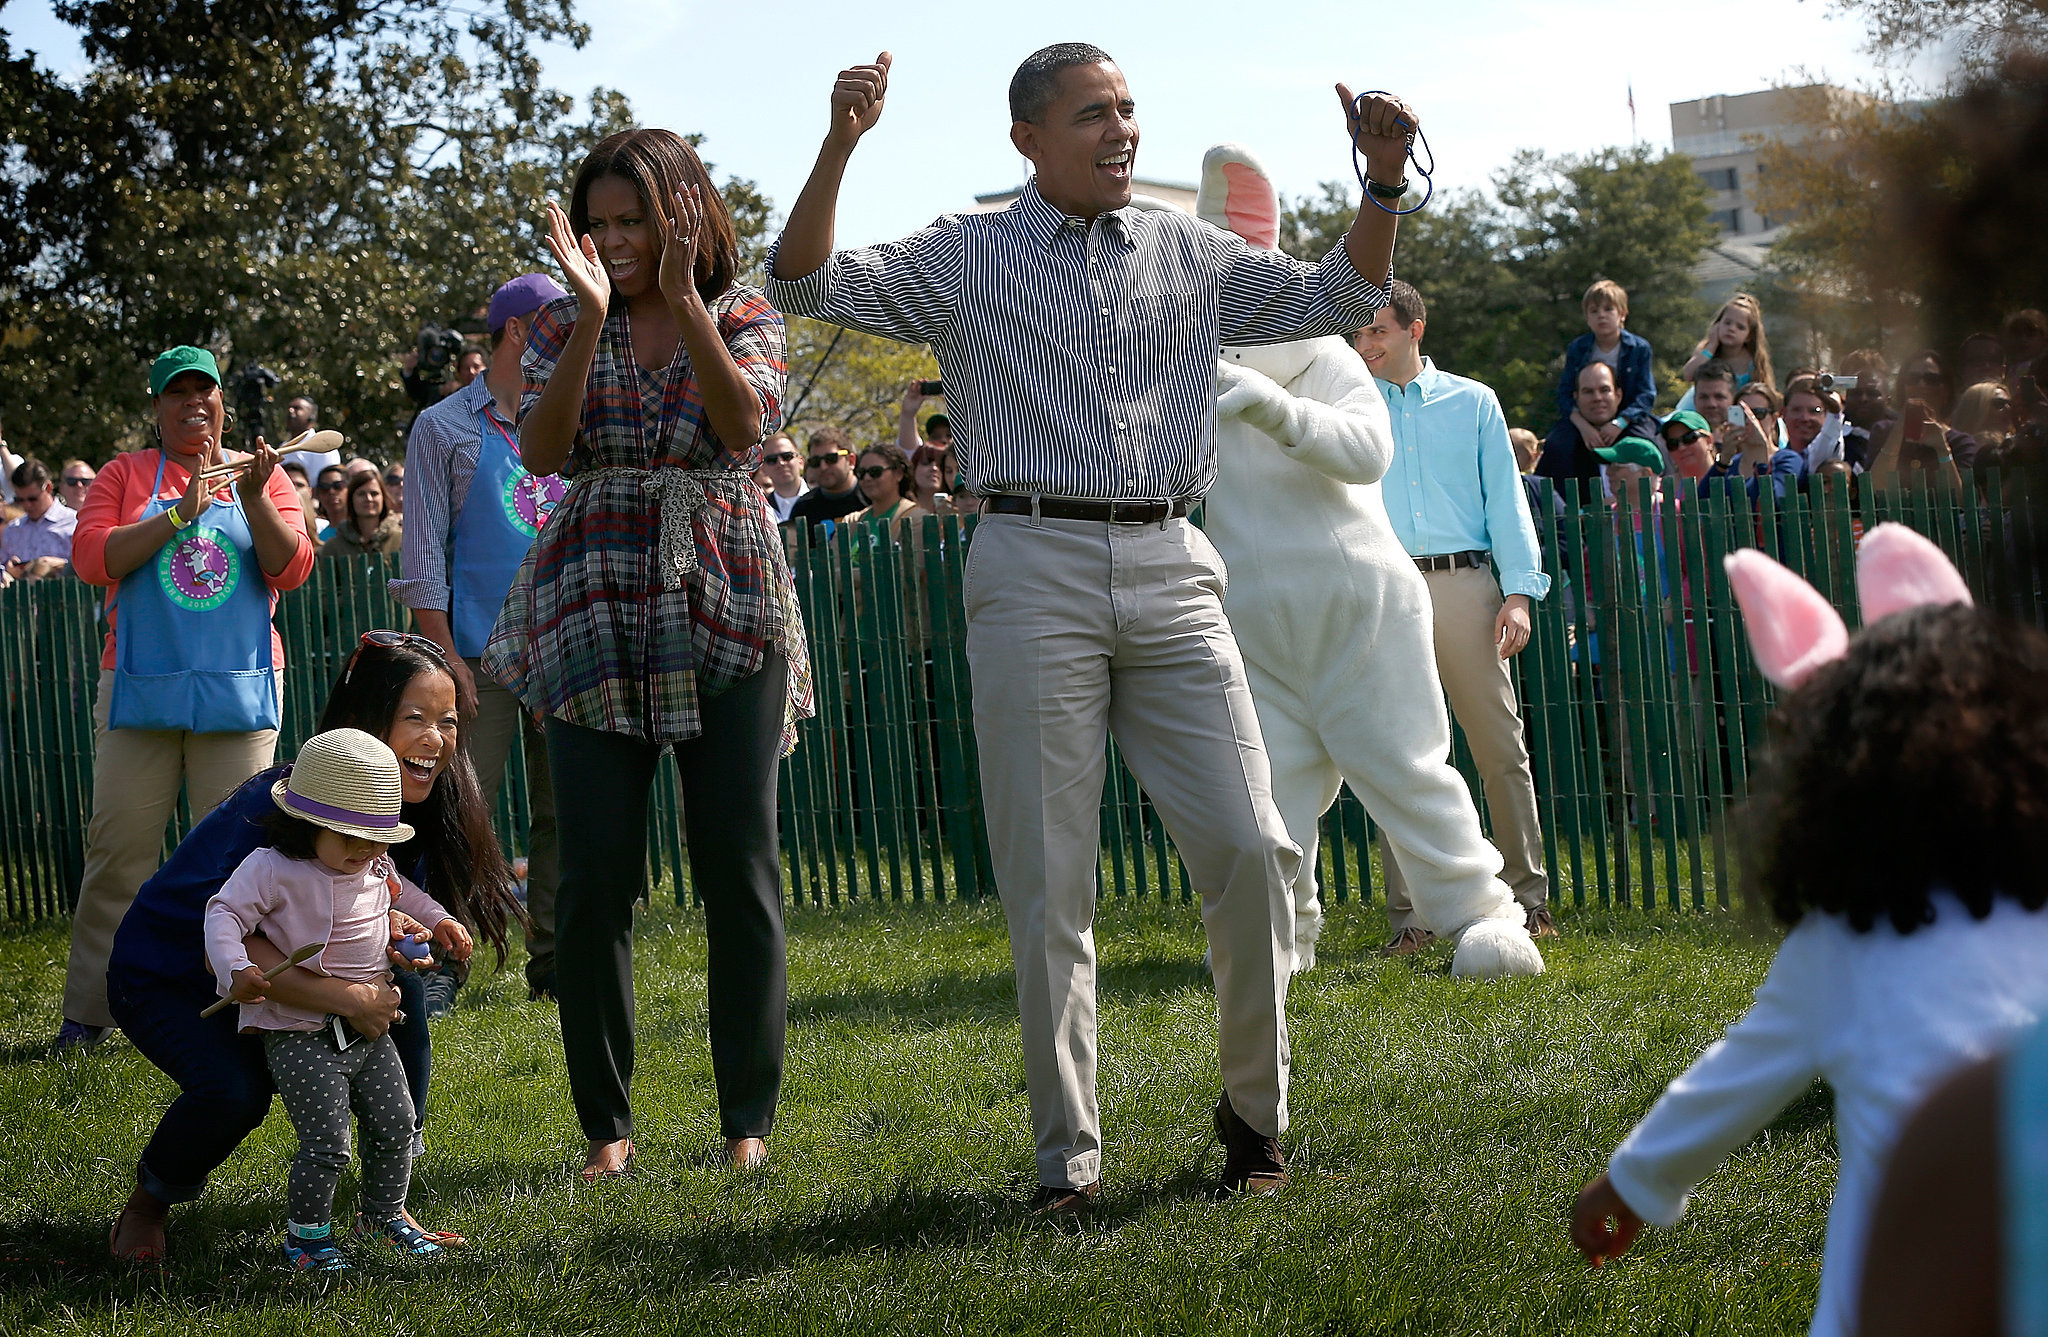 The Obamas cheered for all the kids.